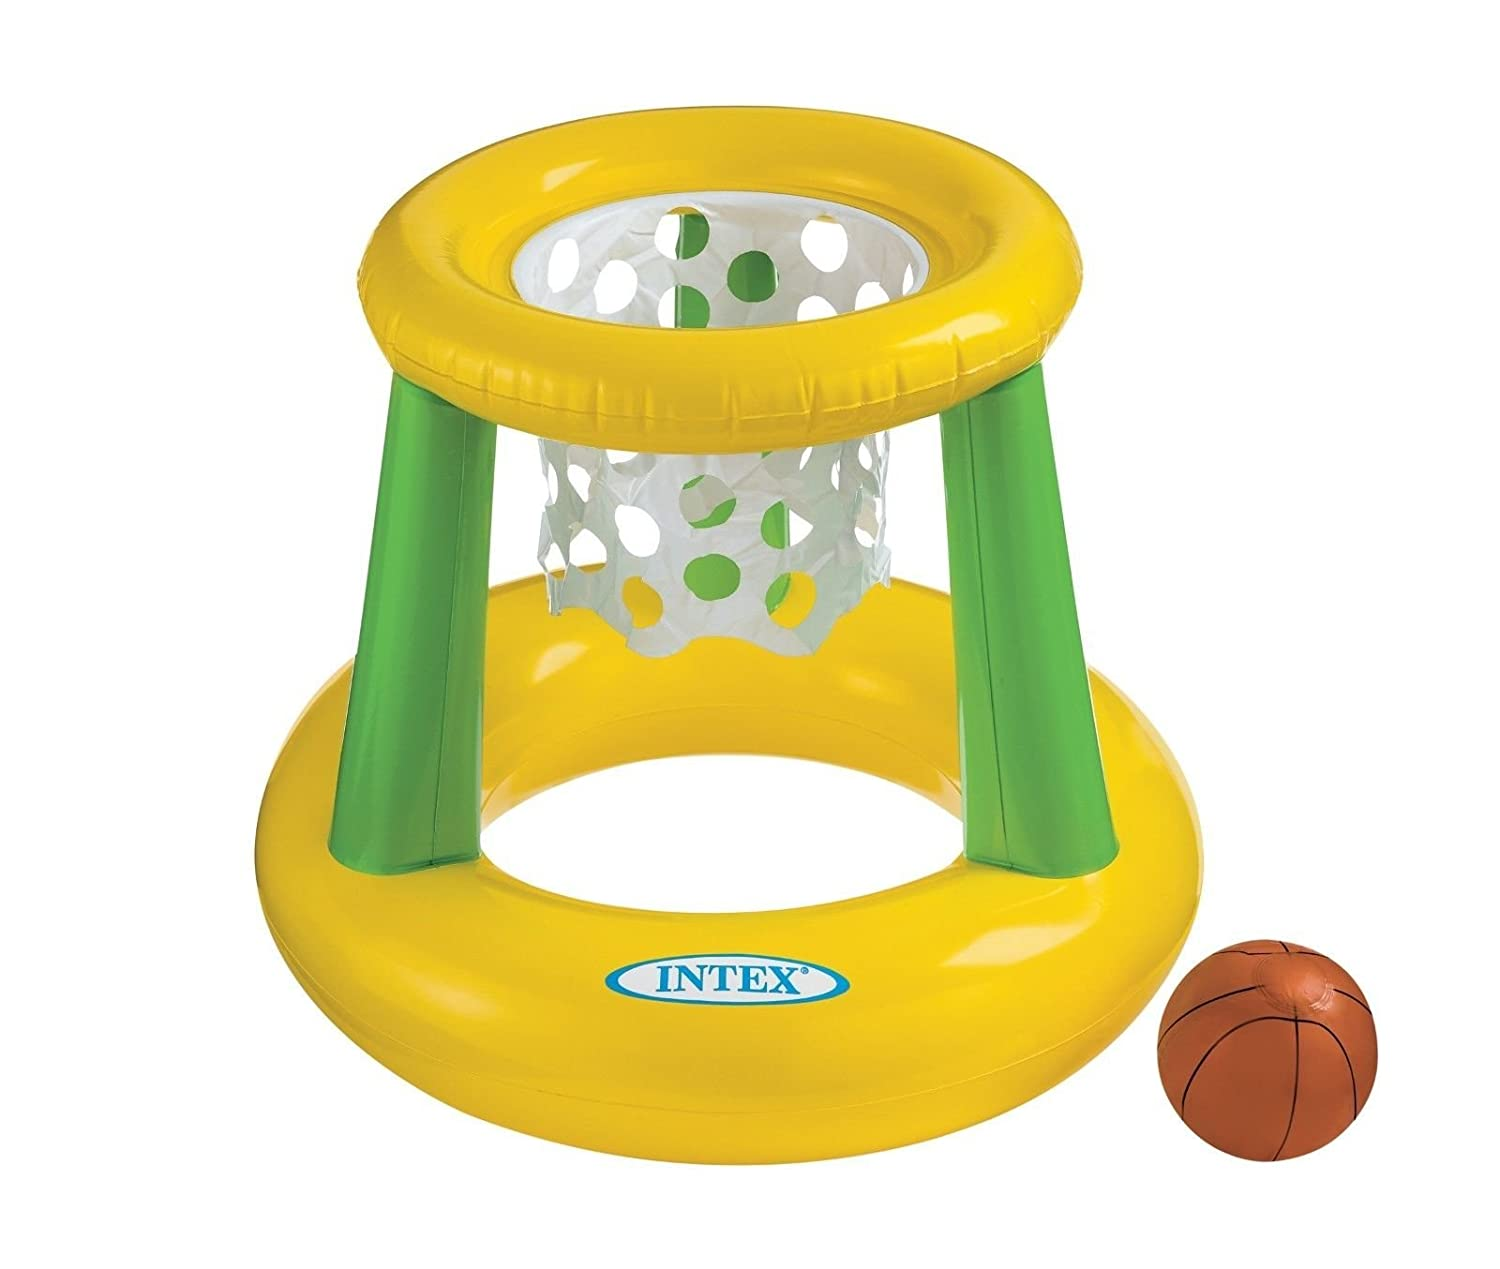 Intex - Floating Hoops 3, Incl Inflatable Pool Hoop & Basketball, Repair Patch by Intex Intex Imports B00KY9NB76